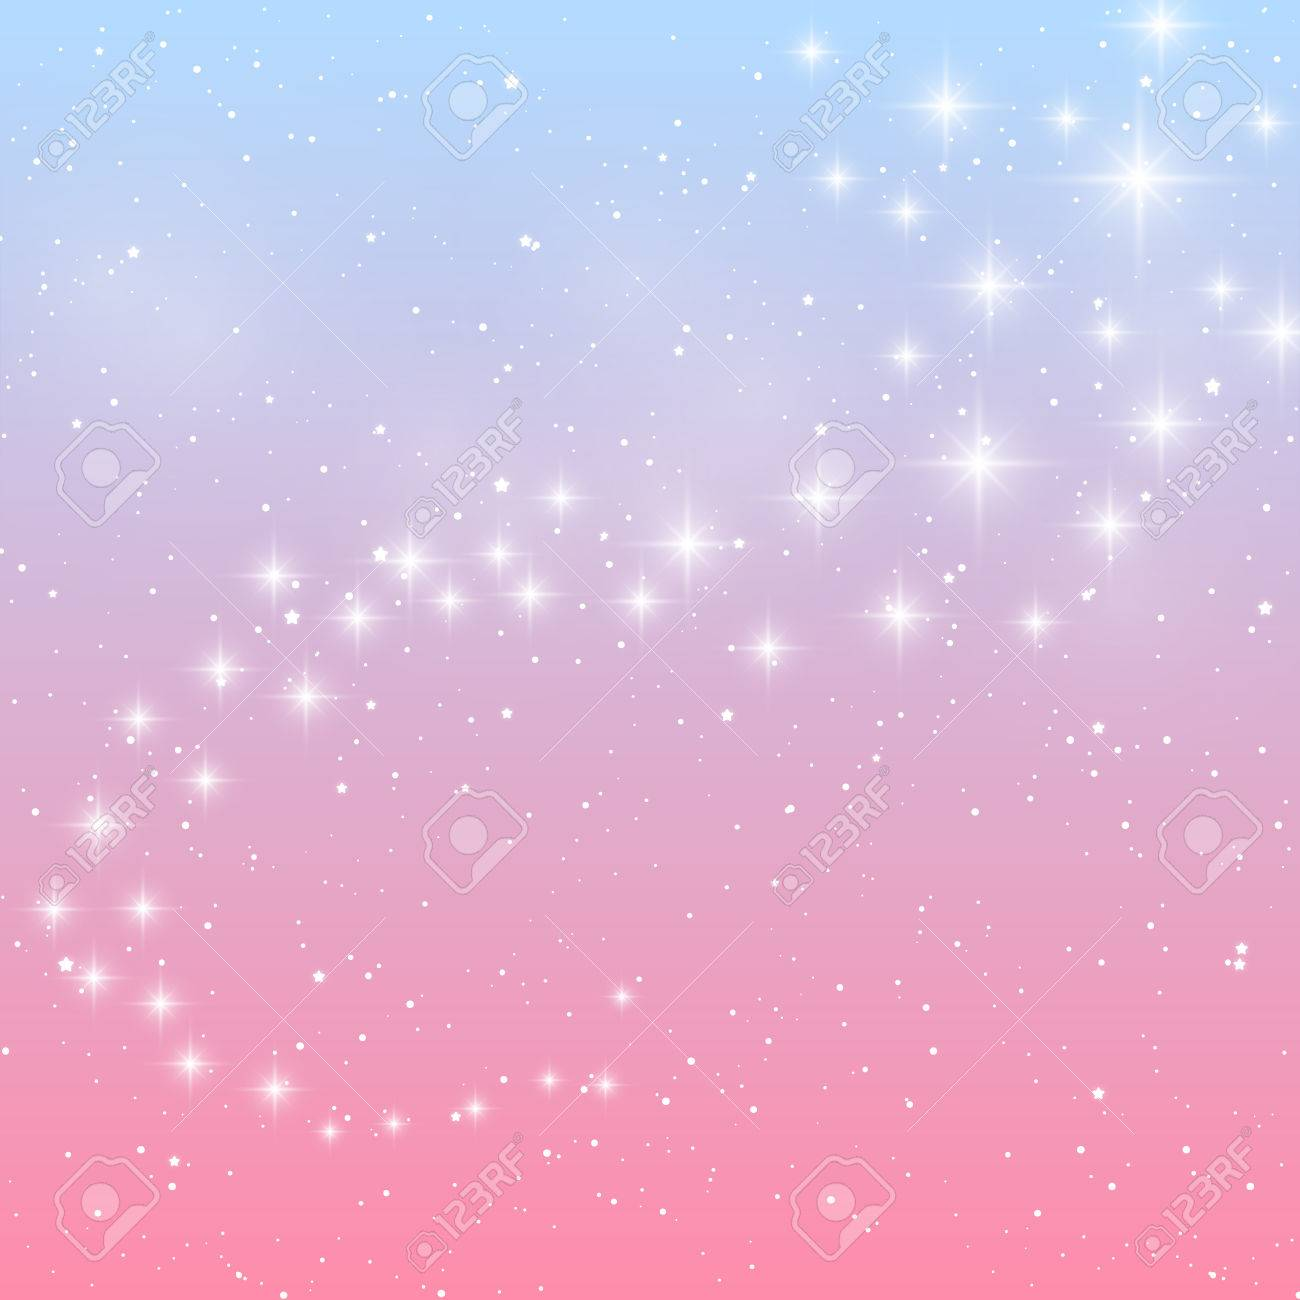 shiny stars on blue and pink background stock vector 50591987